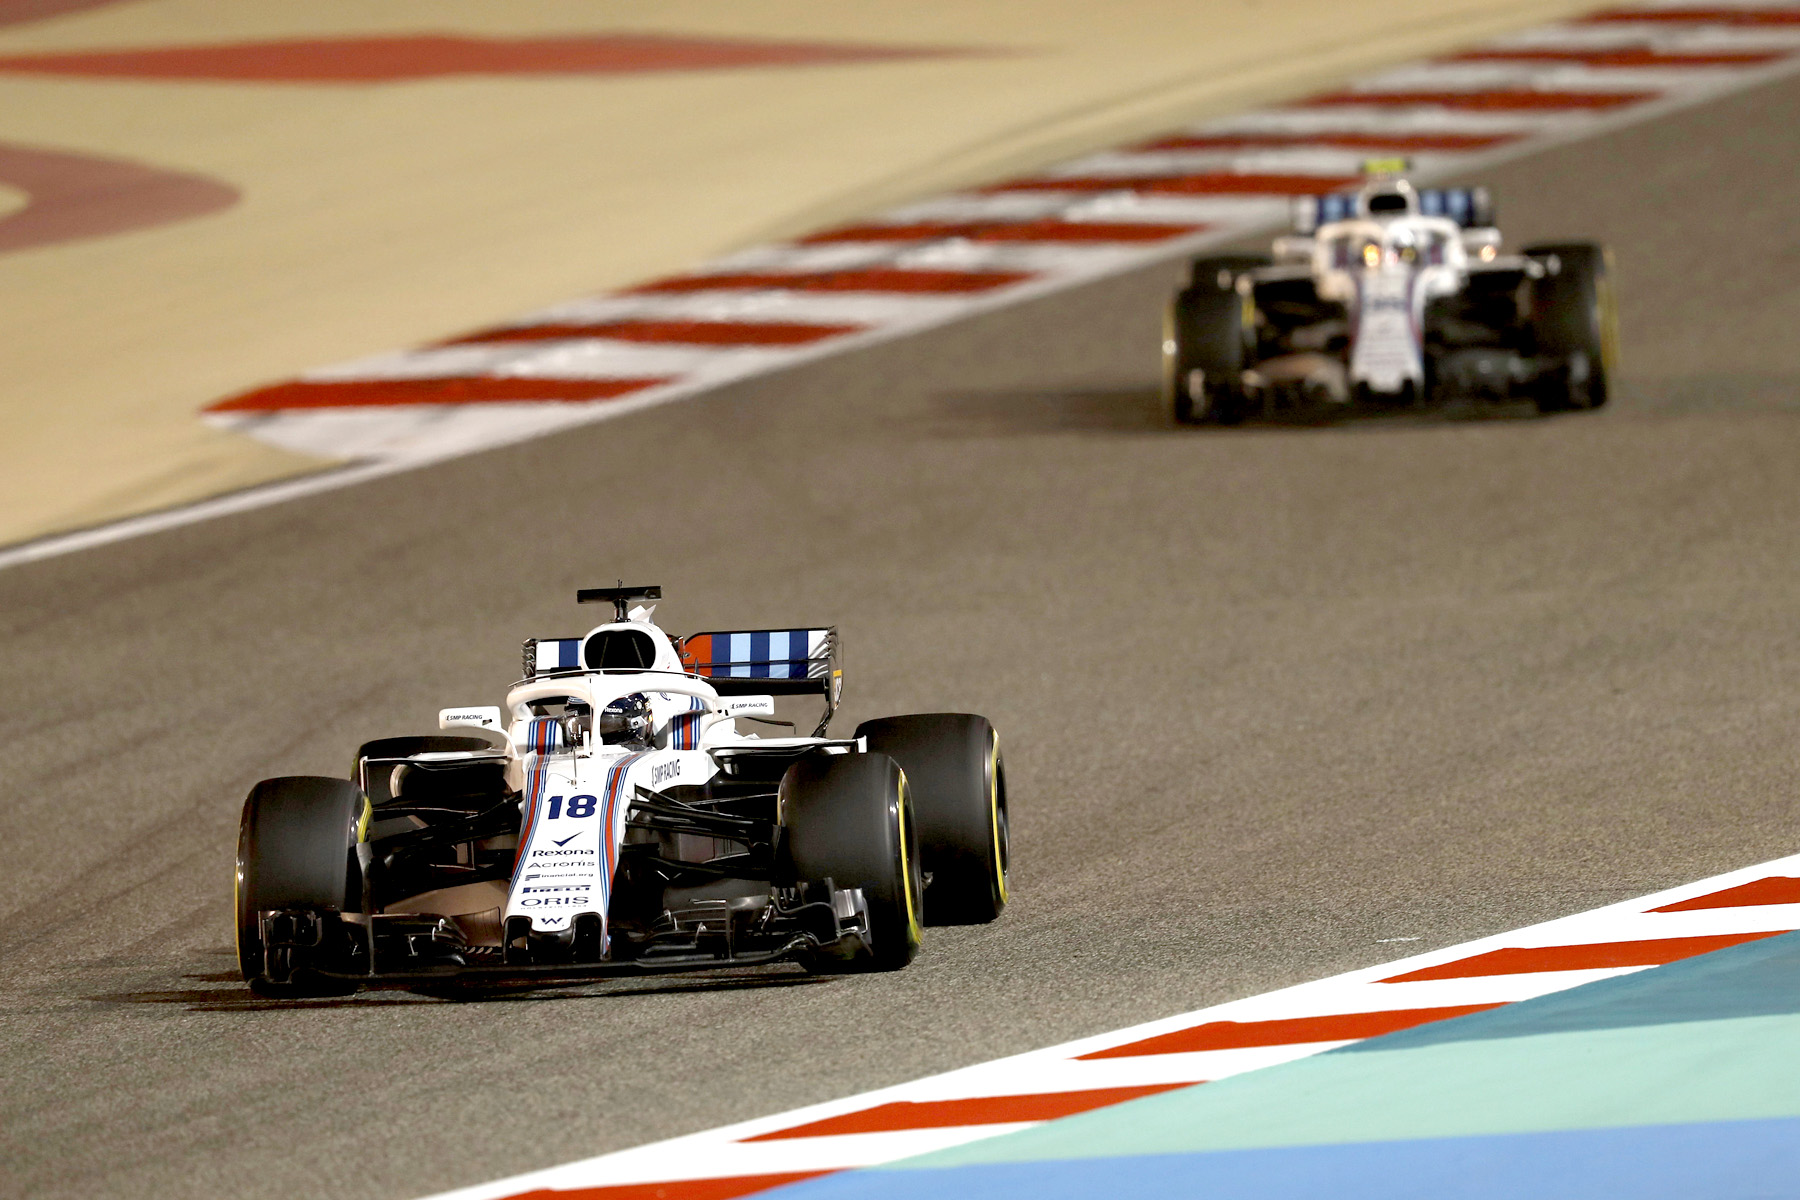 Lance Stroll and Sergey Sirotkin on track at the 2018 Bahrain Grand Prix.